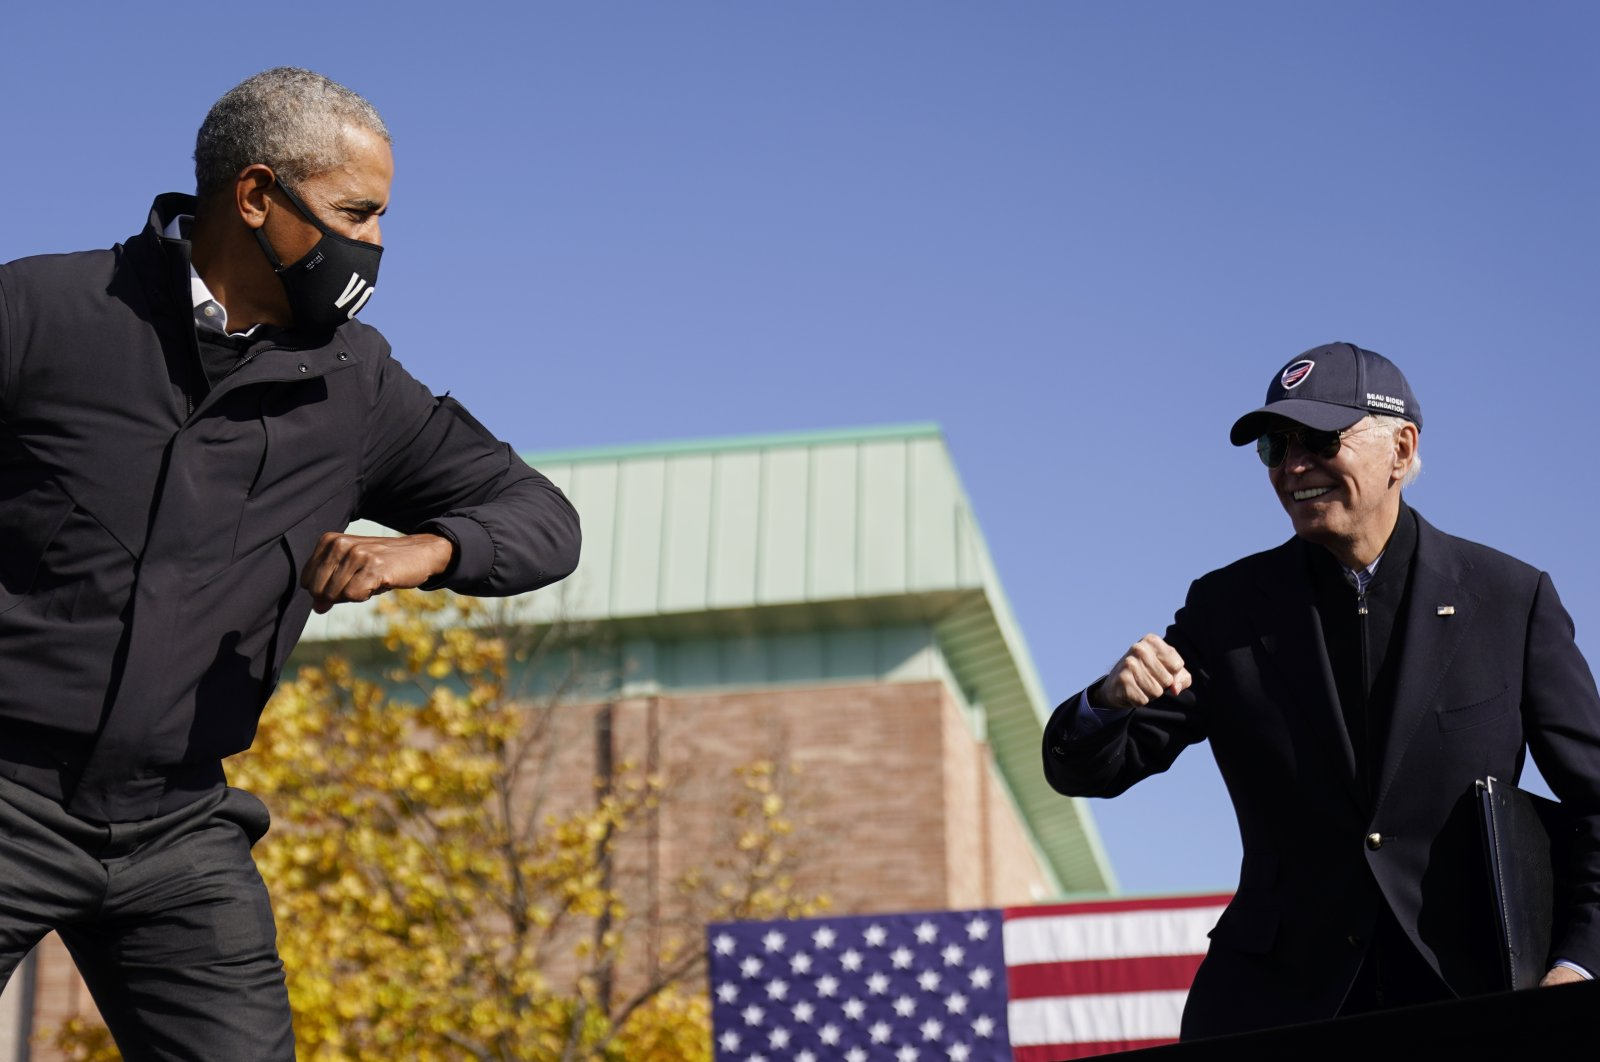 U.S. Democratic presidential candidate Joe Biden and former President Barack Obama greet each other with an air elbow bump at a meeting for the election campaign in Flint, Michigan, U.S., Oct. 31, 2020. (AP Photo)